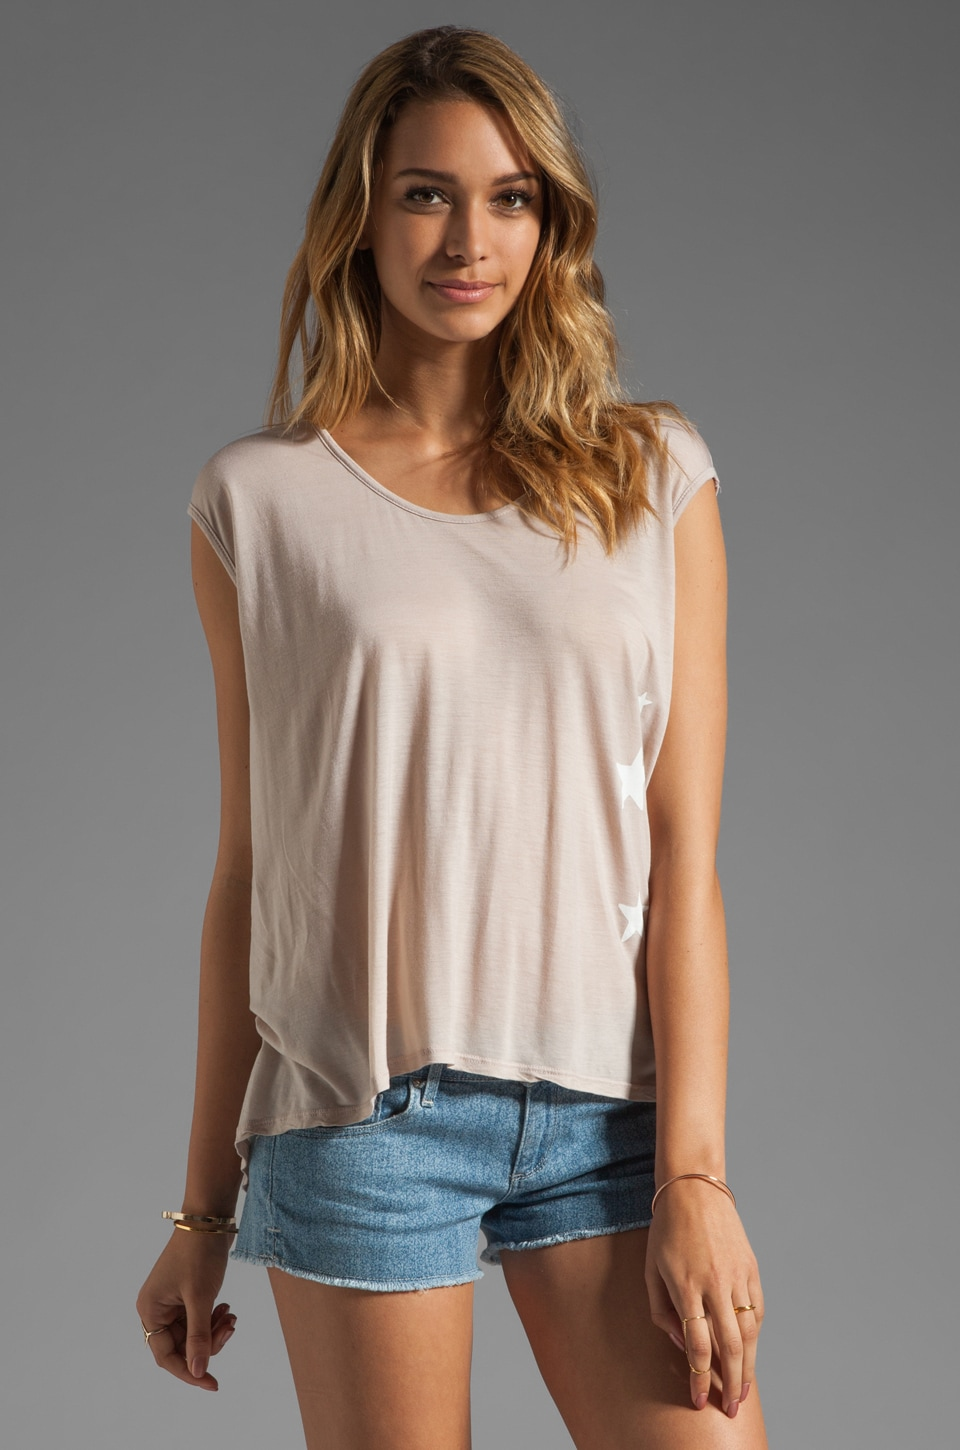 291 Side Stars Cross Back Tee in Nude